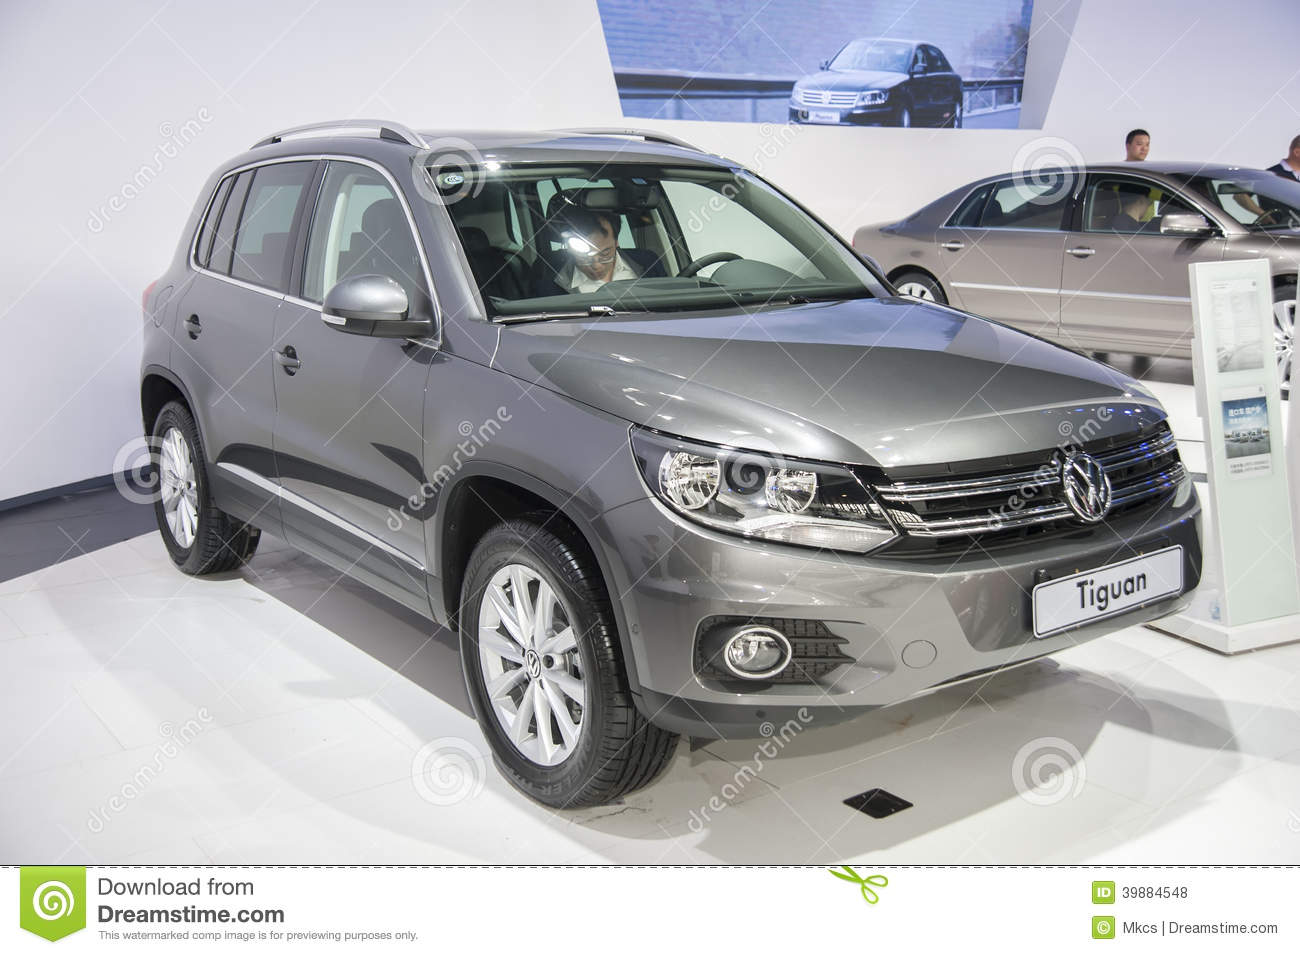 voiture tiguan grise de volkswagen photo stock ditorial. Black Bedroom Furniture Sets. Home Design Ideas